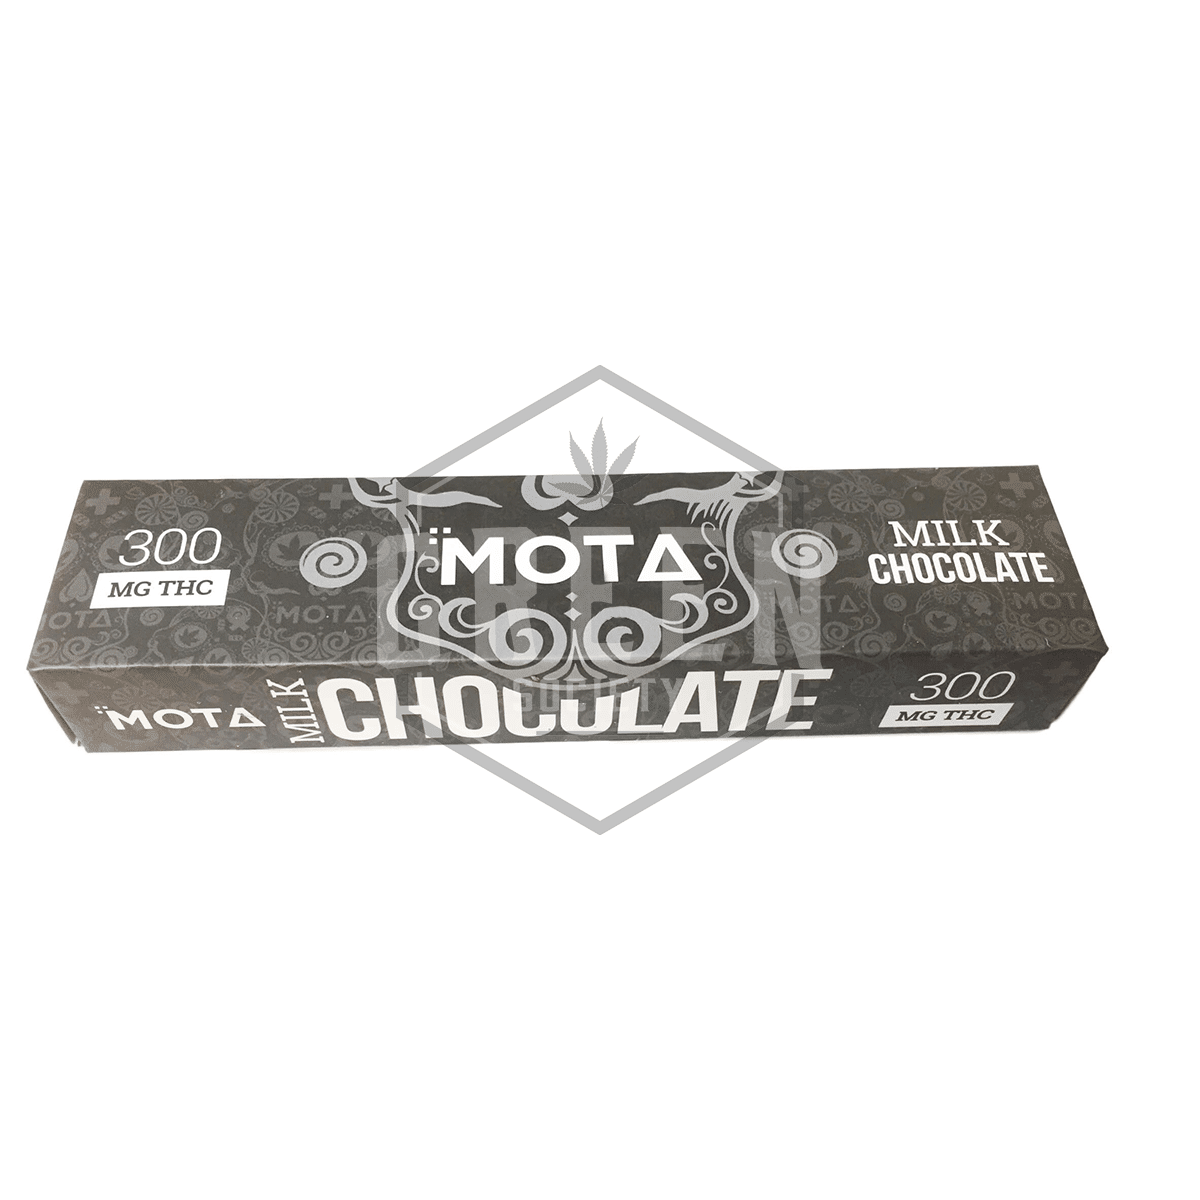 Milk Chocolate Bar (THC 300mg) by MOTA Cannabis by Green Society - Image © 2018 Green Society. All Rights Reserved.